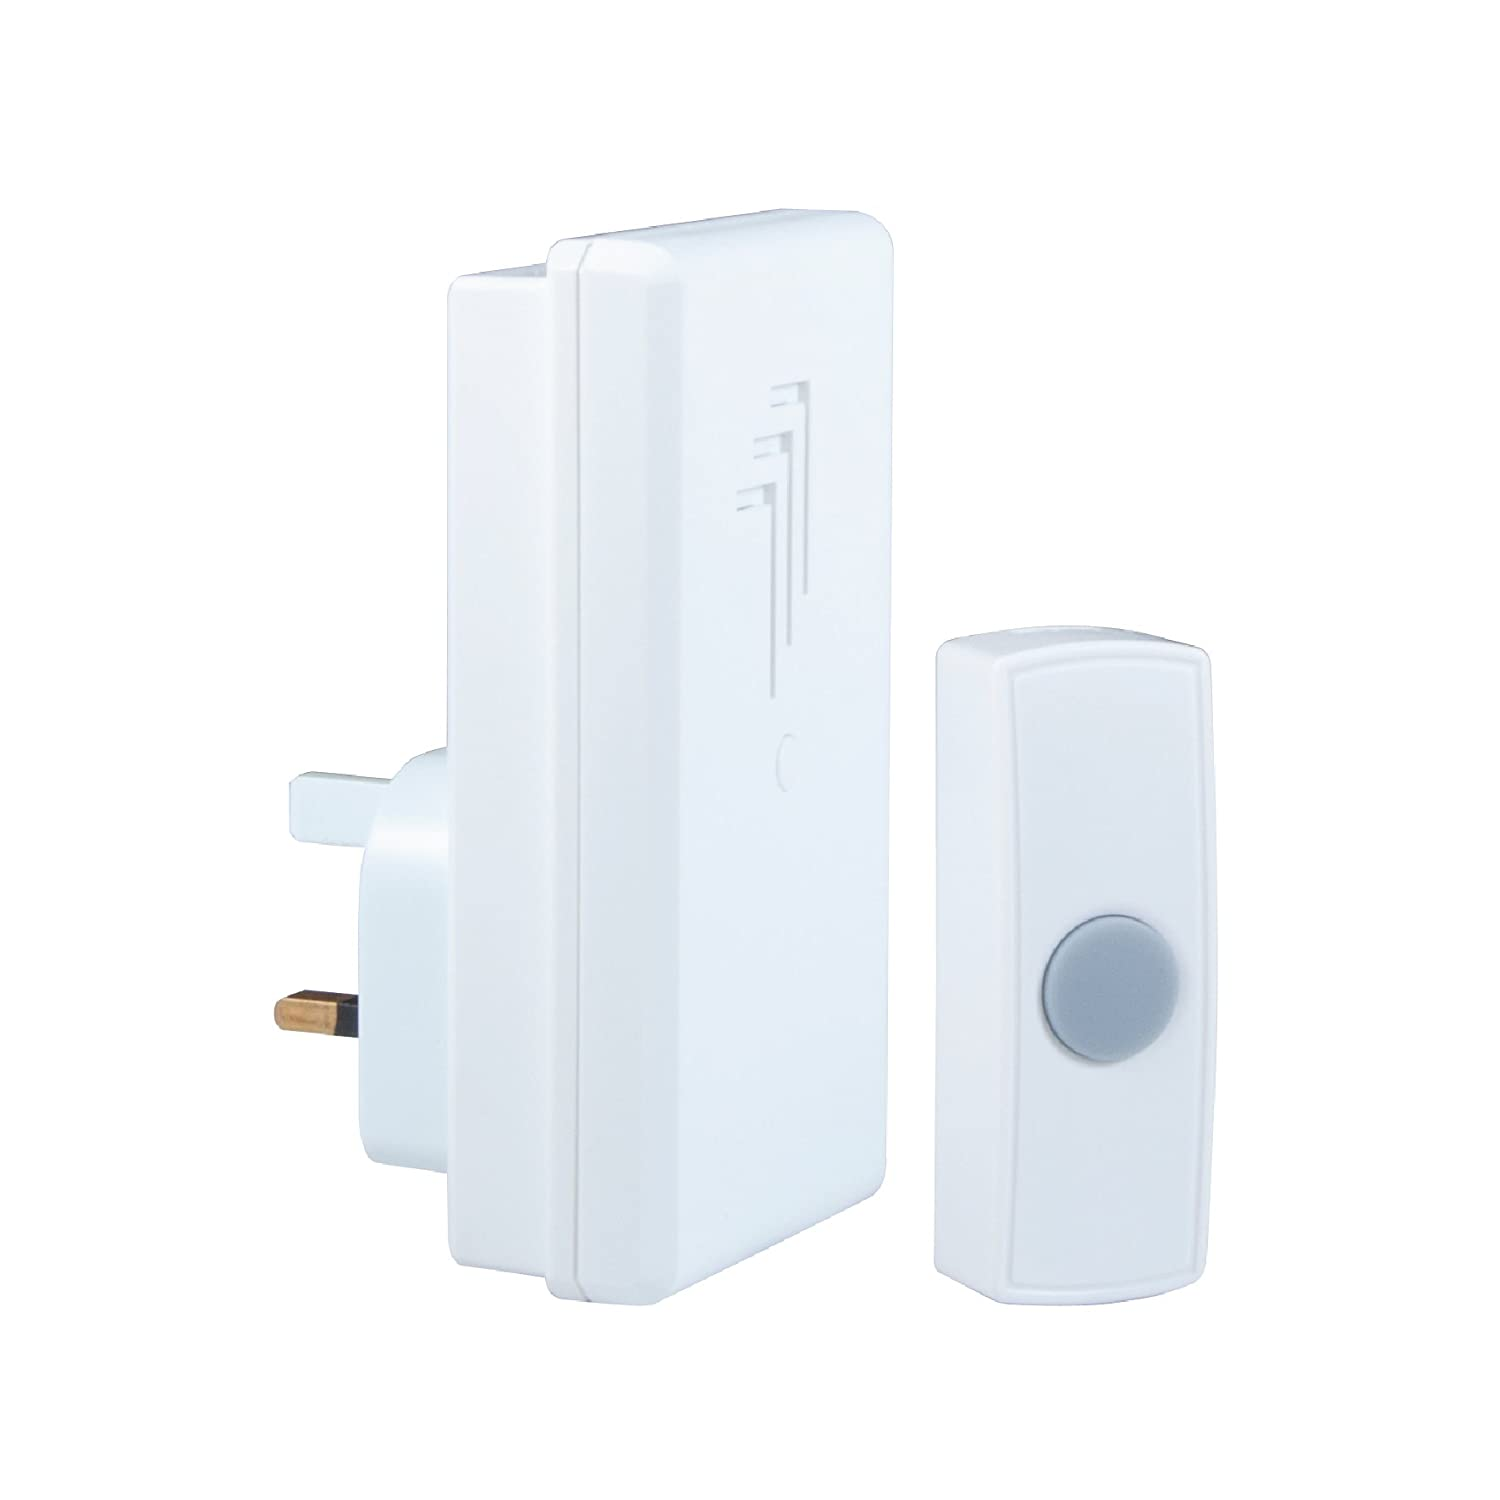 Byron DB302 30m Wireless Plug-In Door Chime Kit with 1 Sound